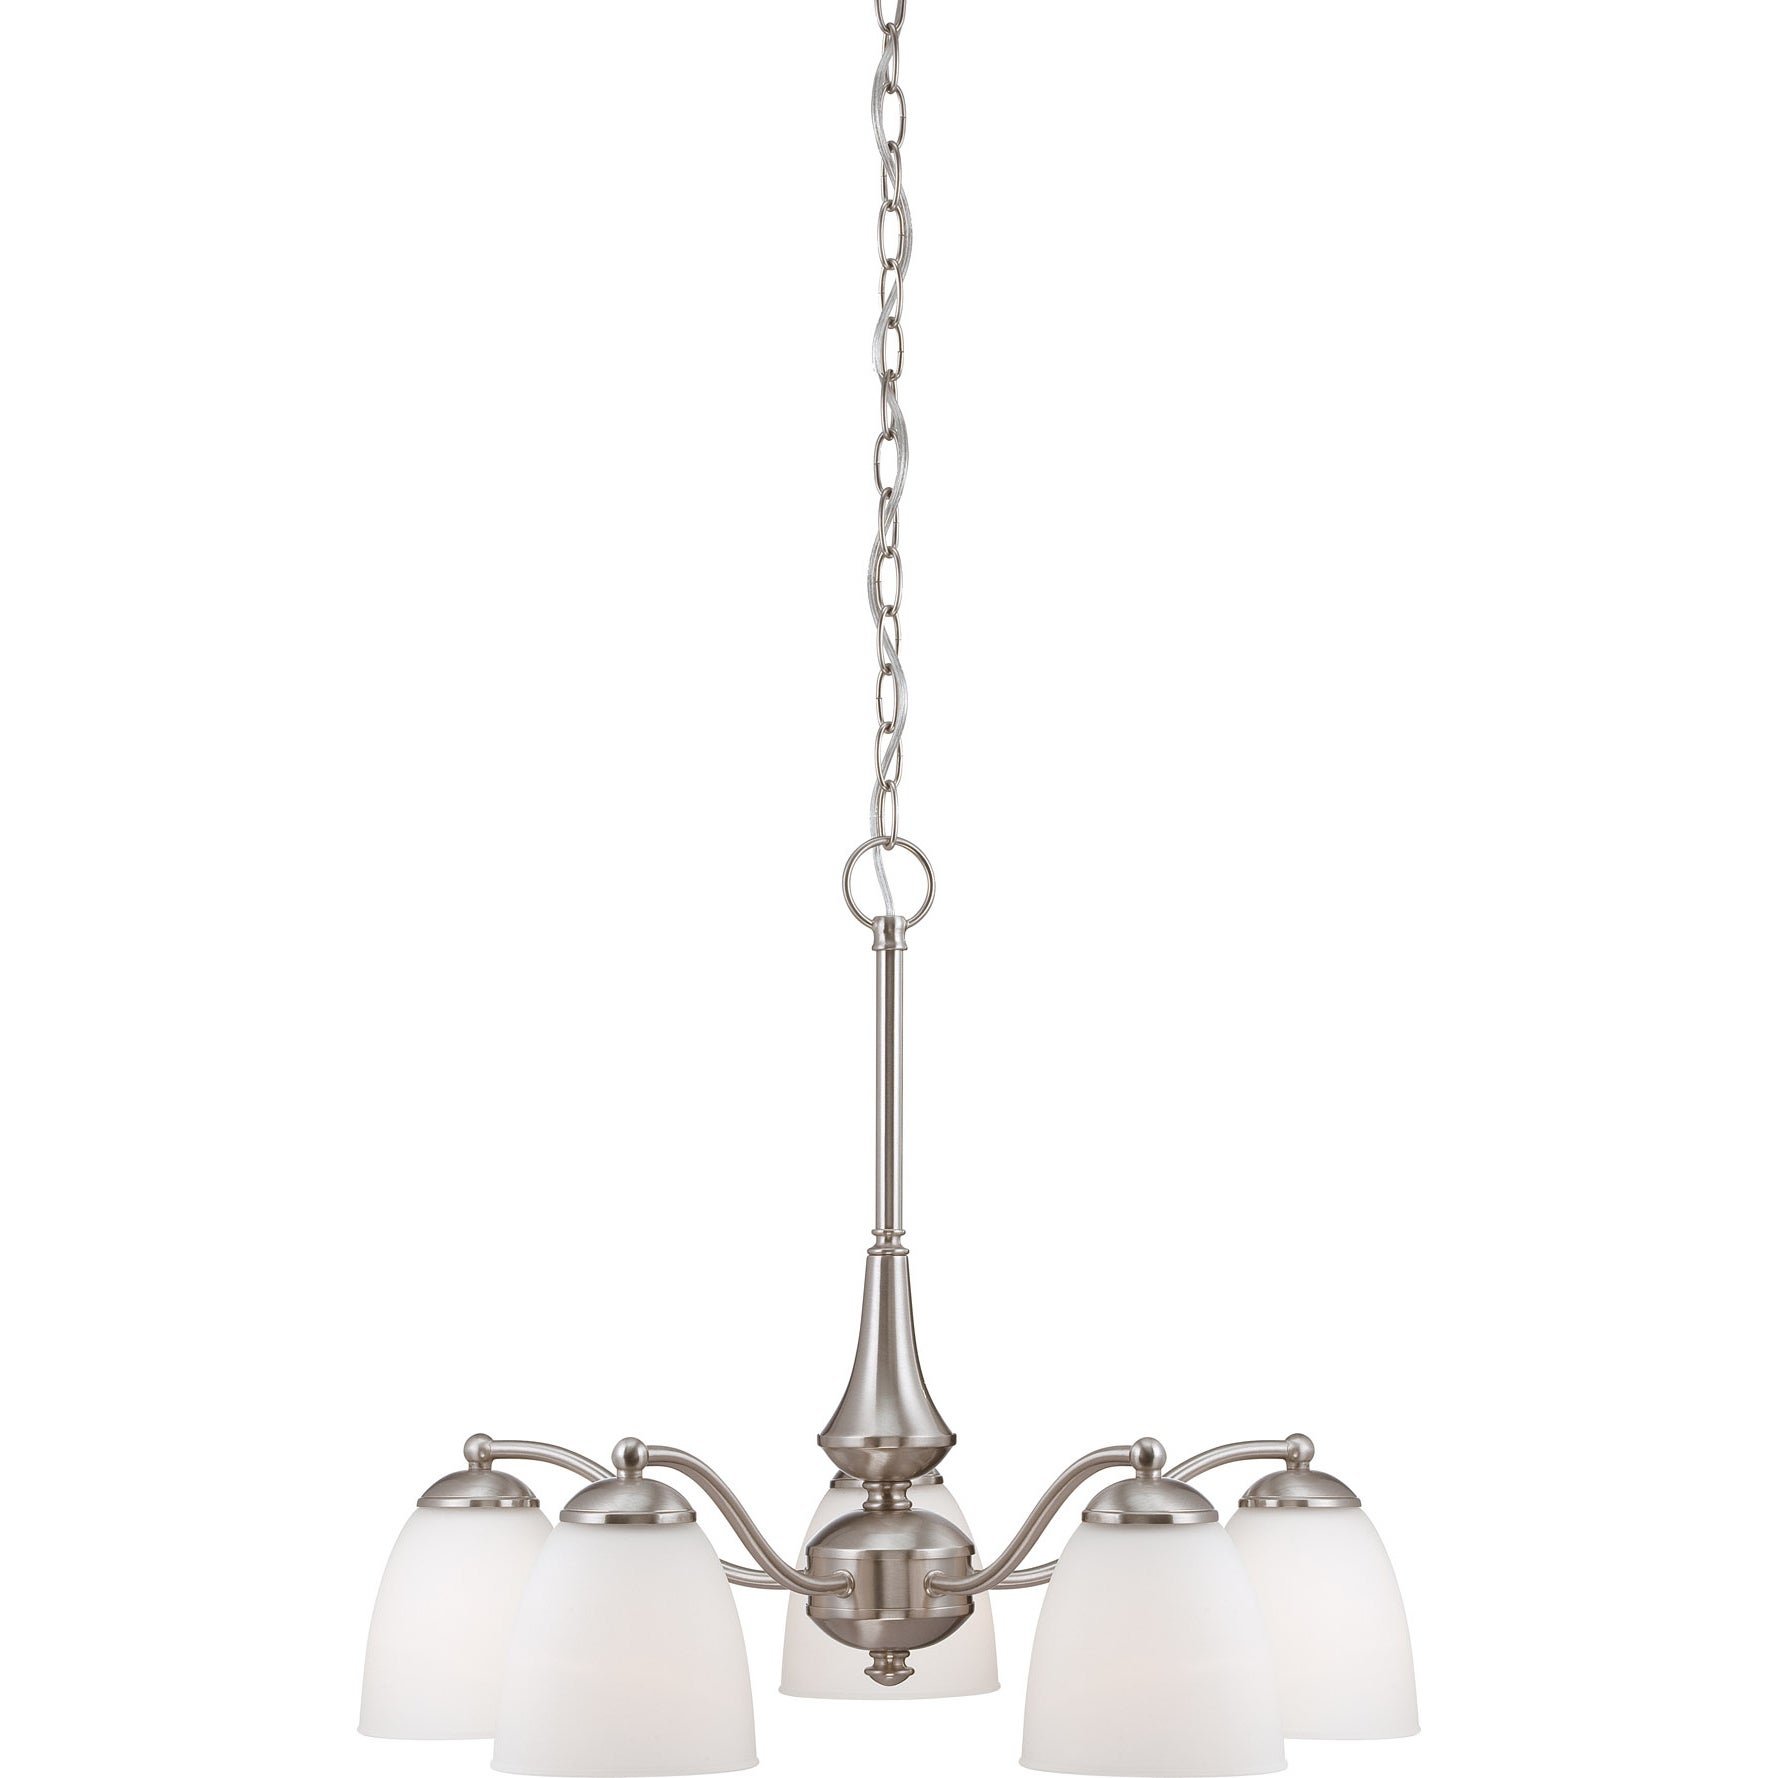 Nuvo 'Patton' 5-light Brushed Nickel Chandelier